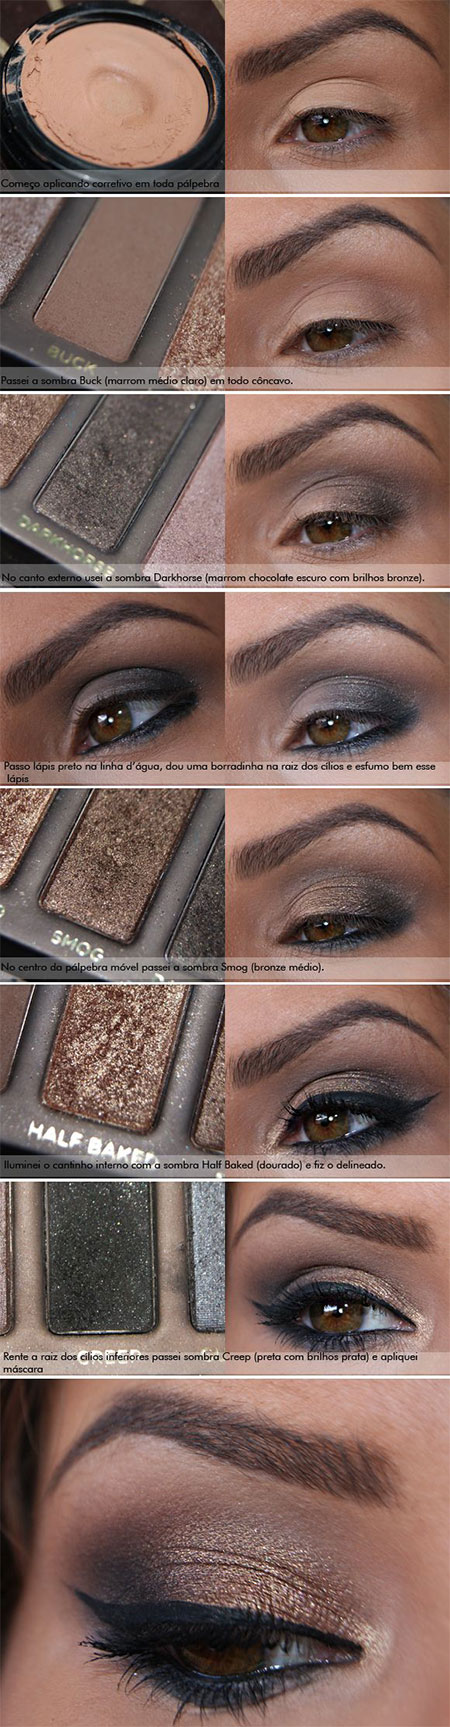 20-Easy-Fall-Make-Up-Tutorials-For-Beginners-Learners-2014-7